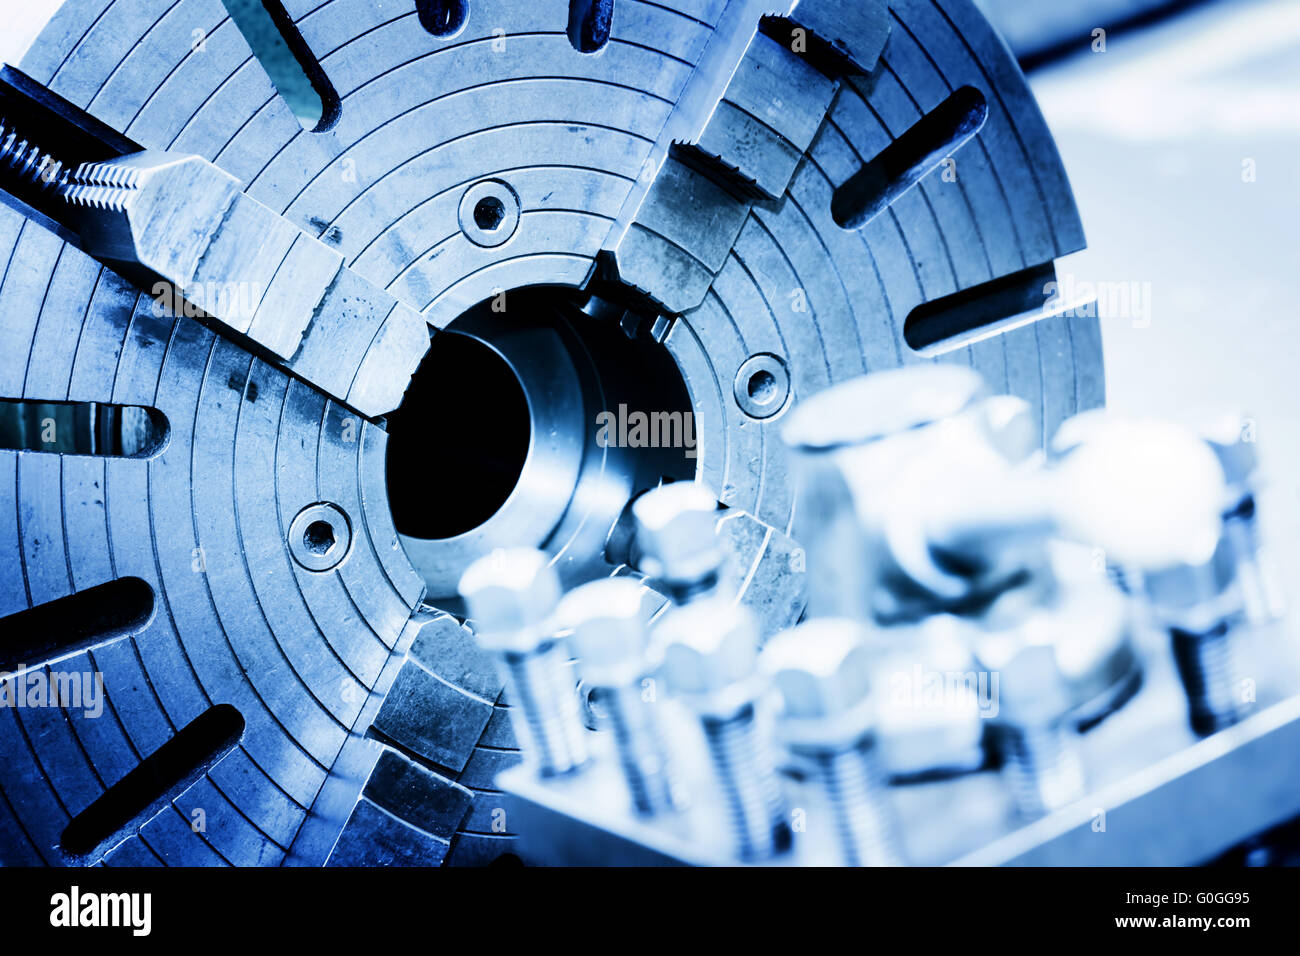 Drilling, boring and milling machine in workshop. Industry - Stock Image